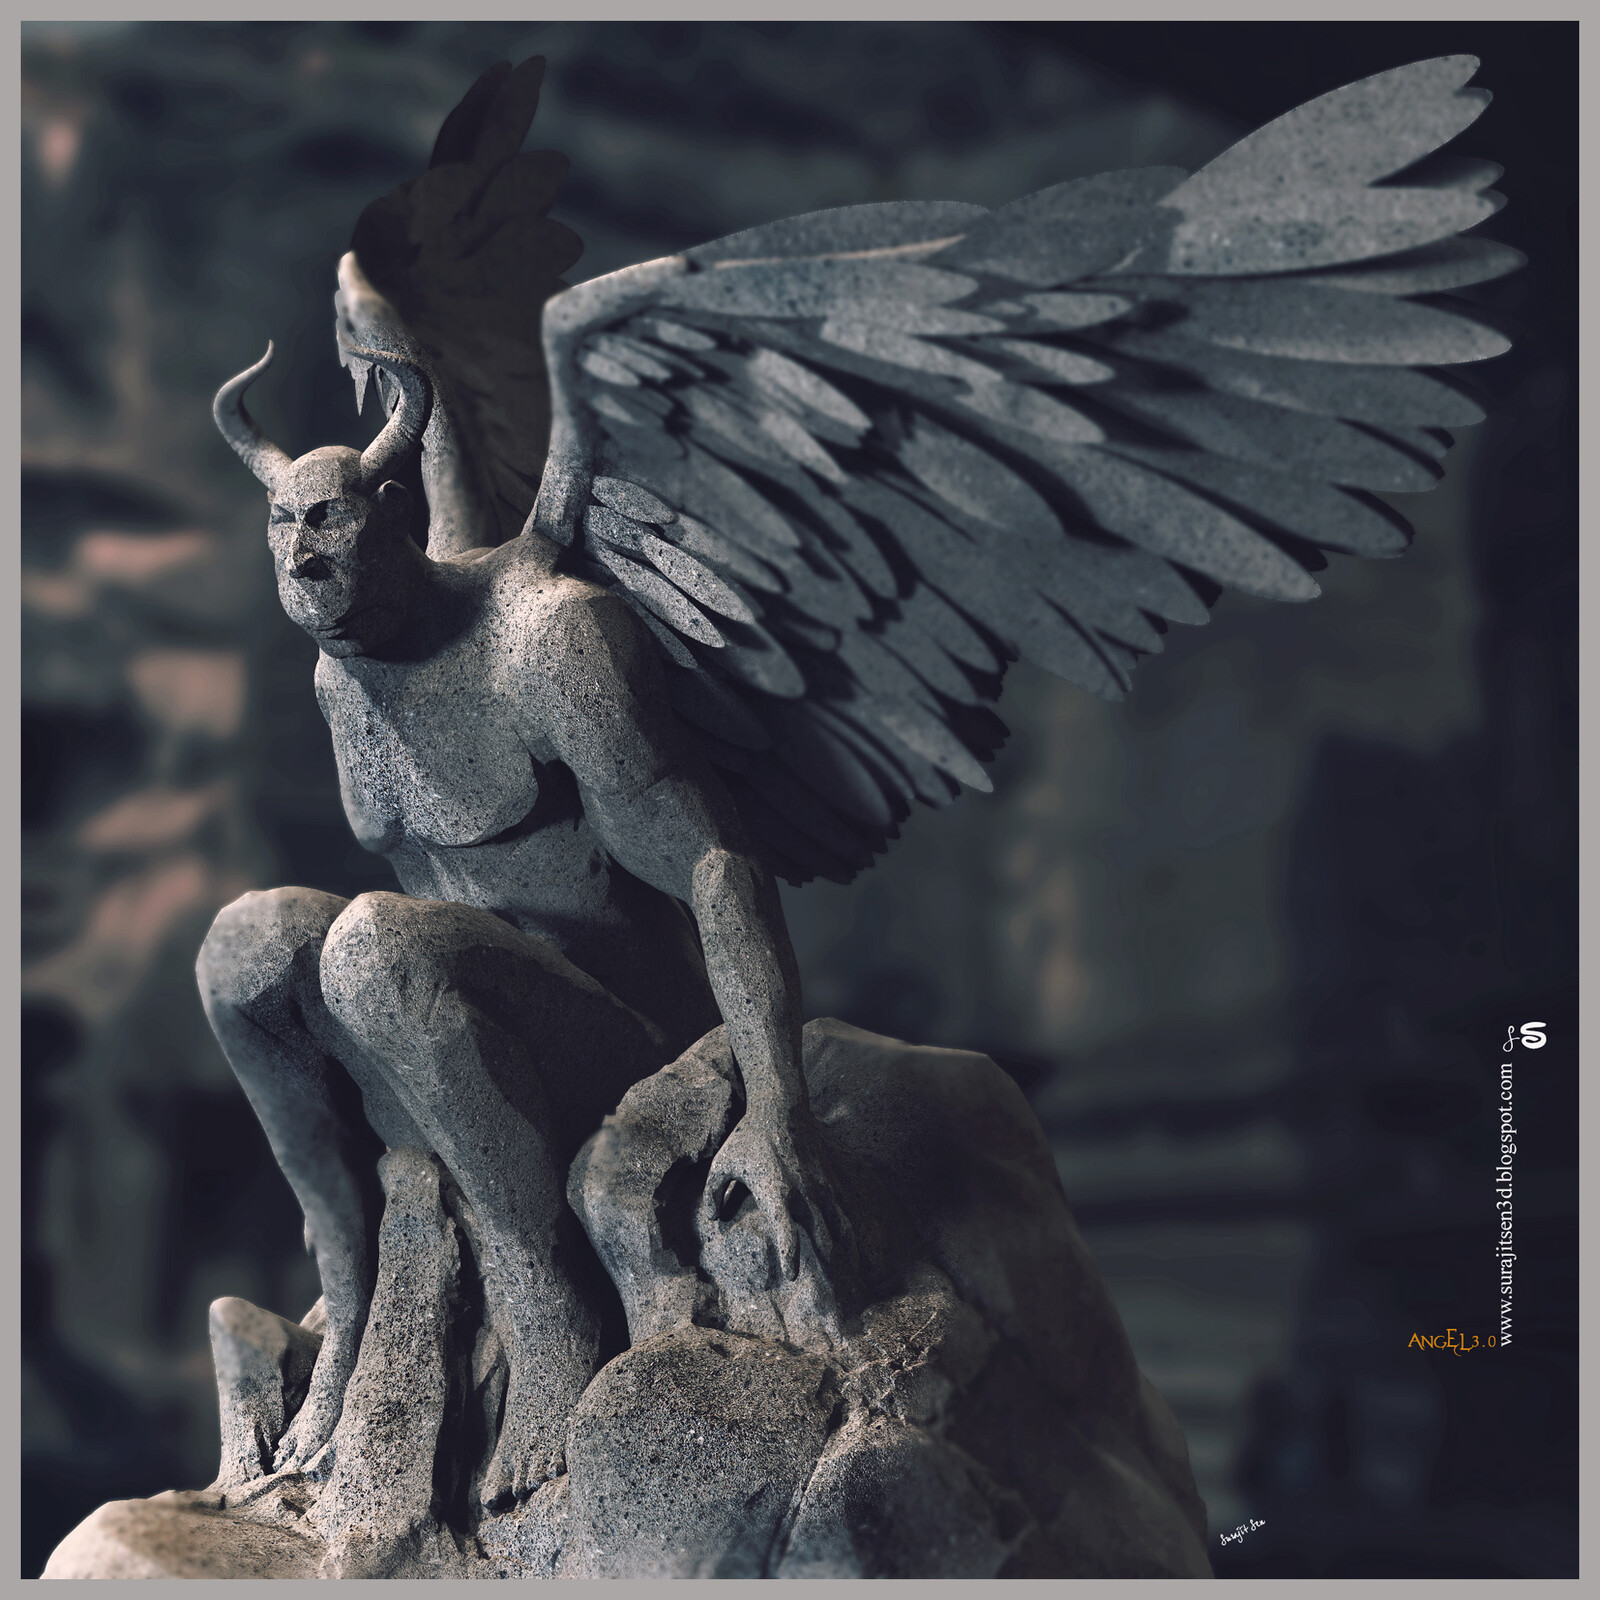 Angel3.0 Digital Sculpture One of my free time Sculpture Background music- #hanszimmermusic